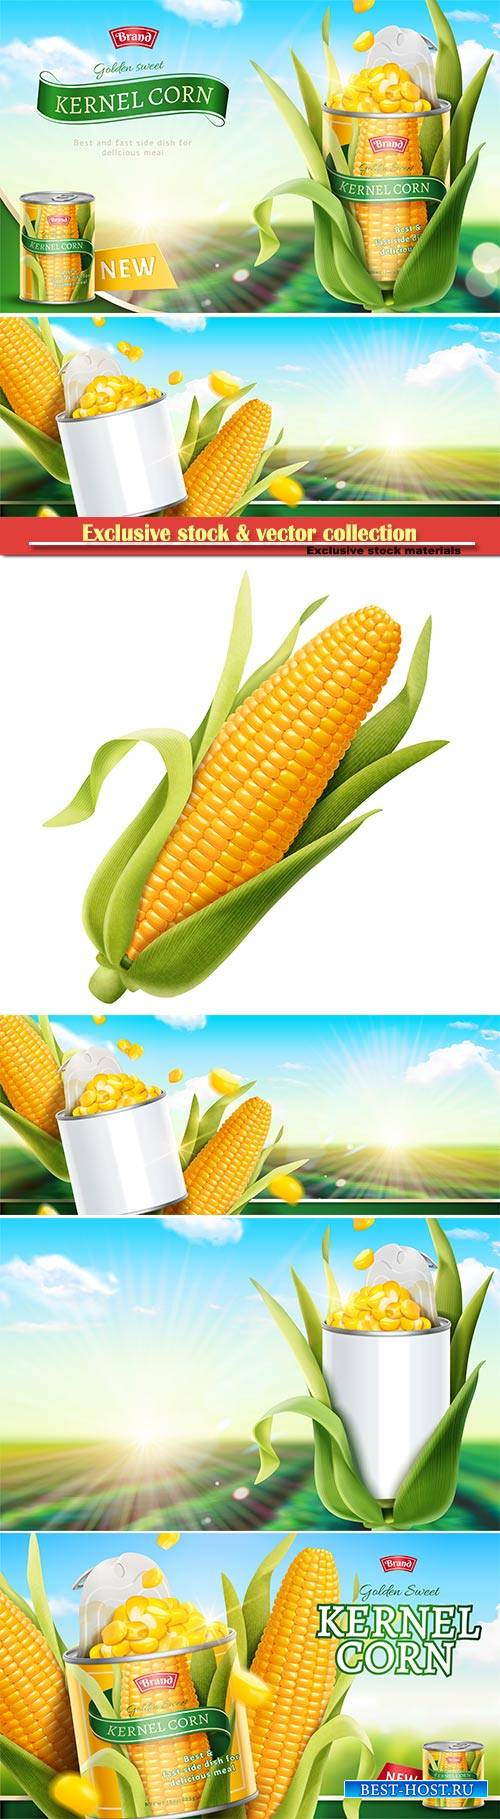 Premium kernel corn can ads in 3d vector illustration